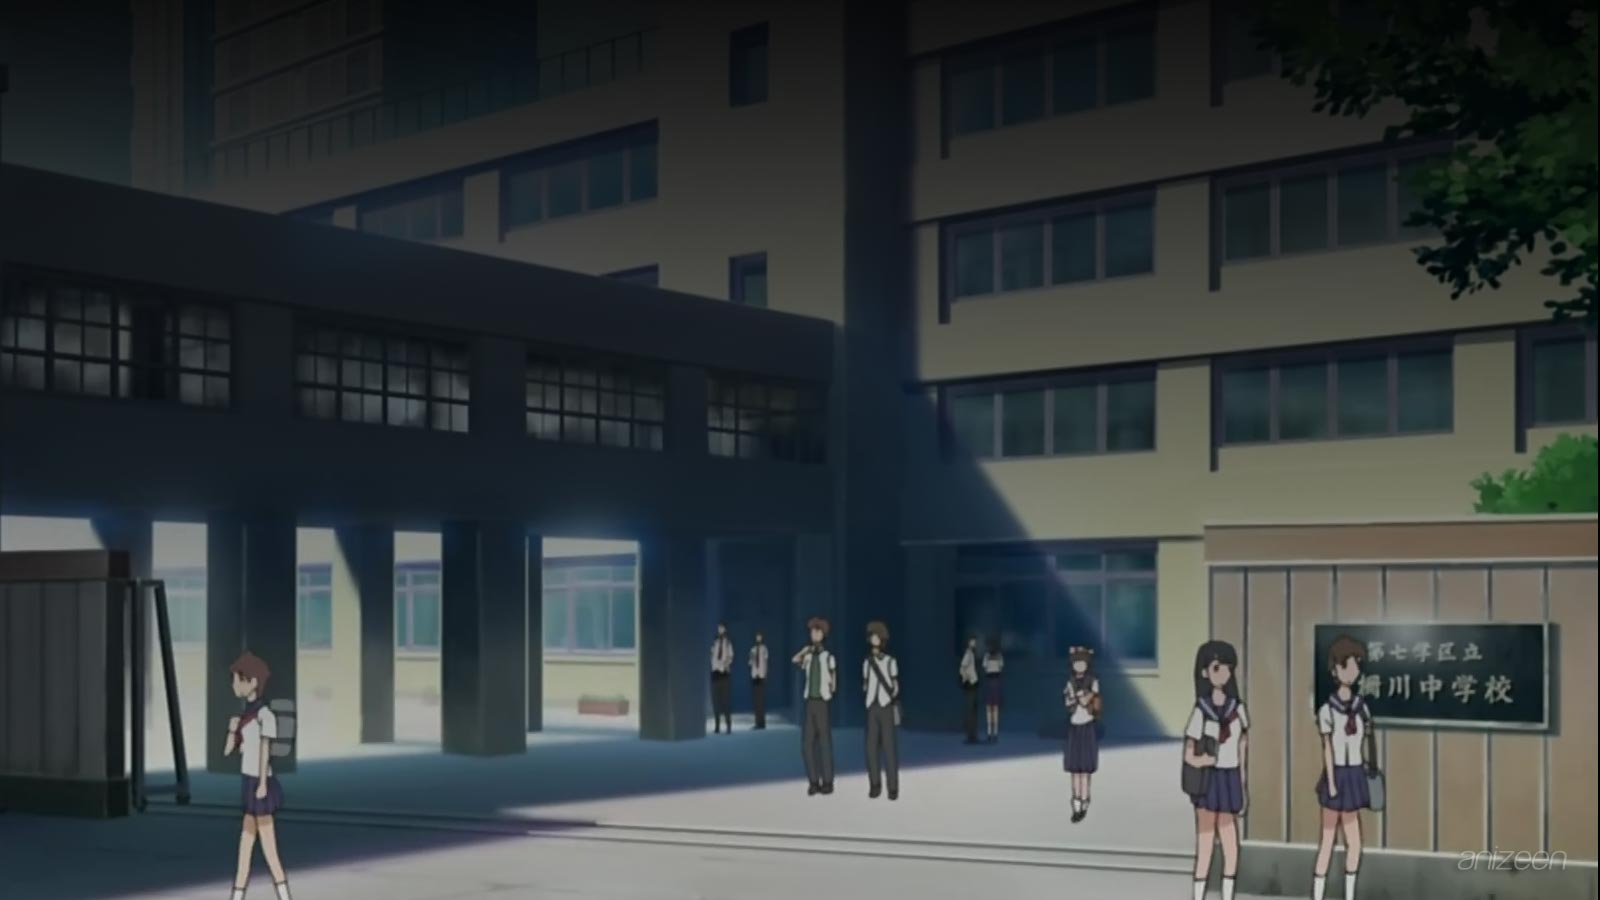 Why are so many Anime set in High Schools?